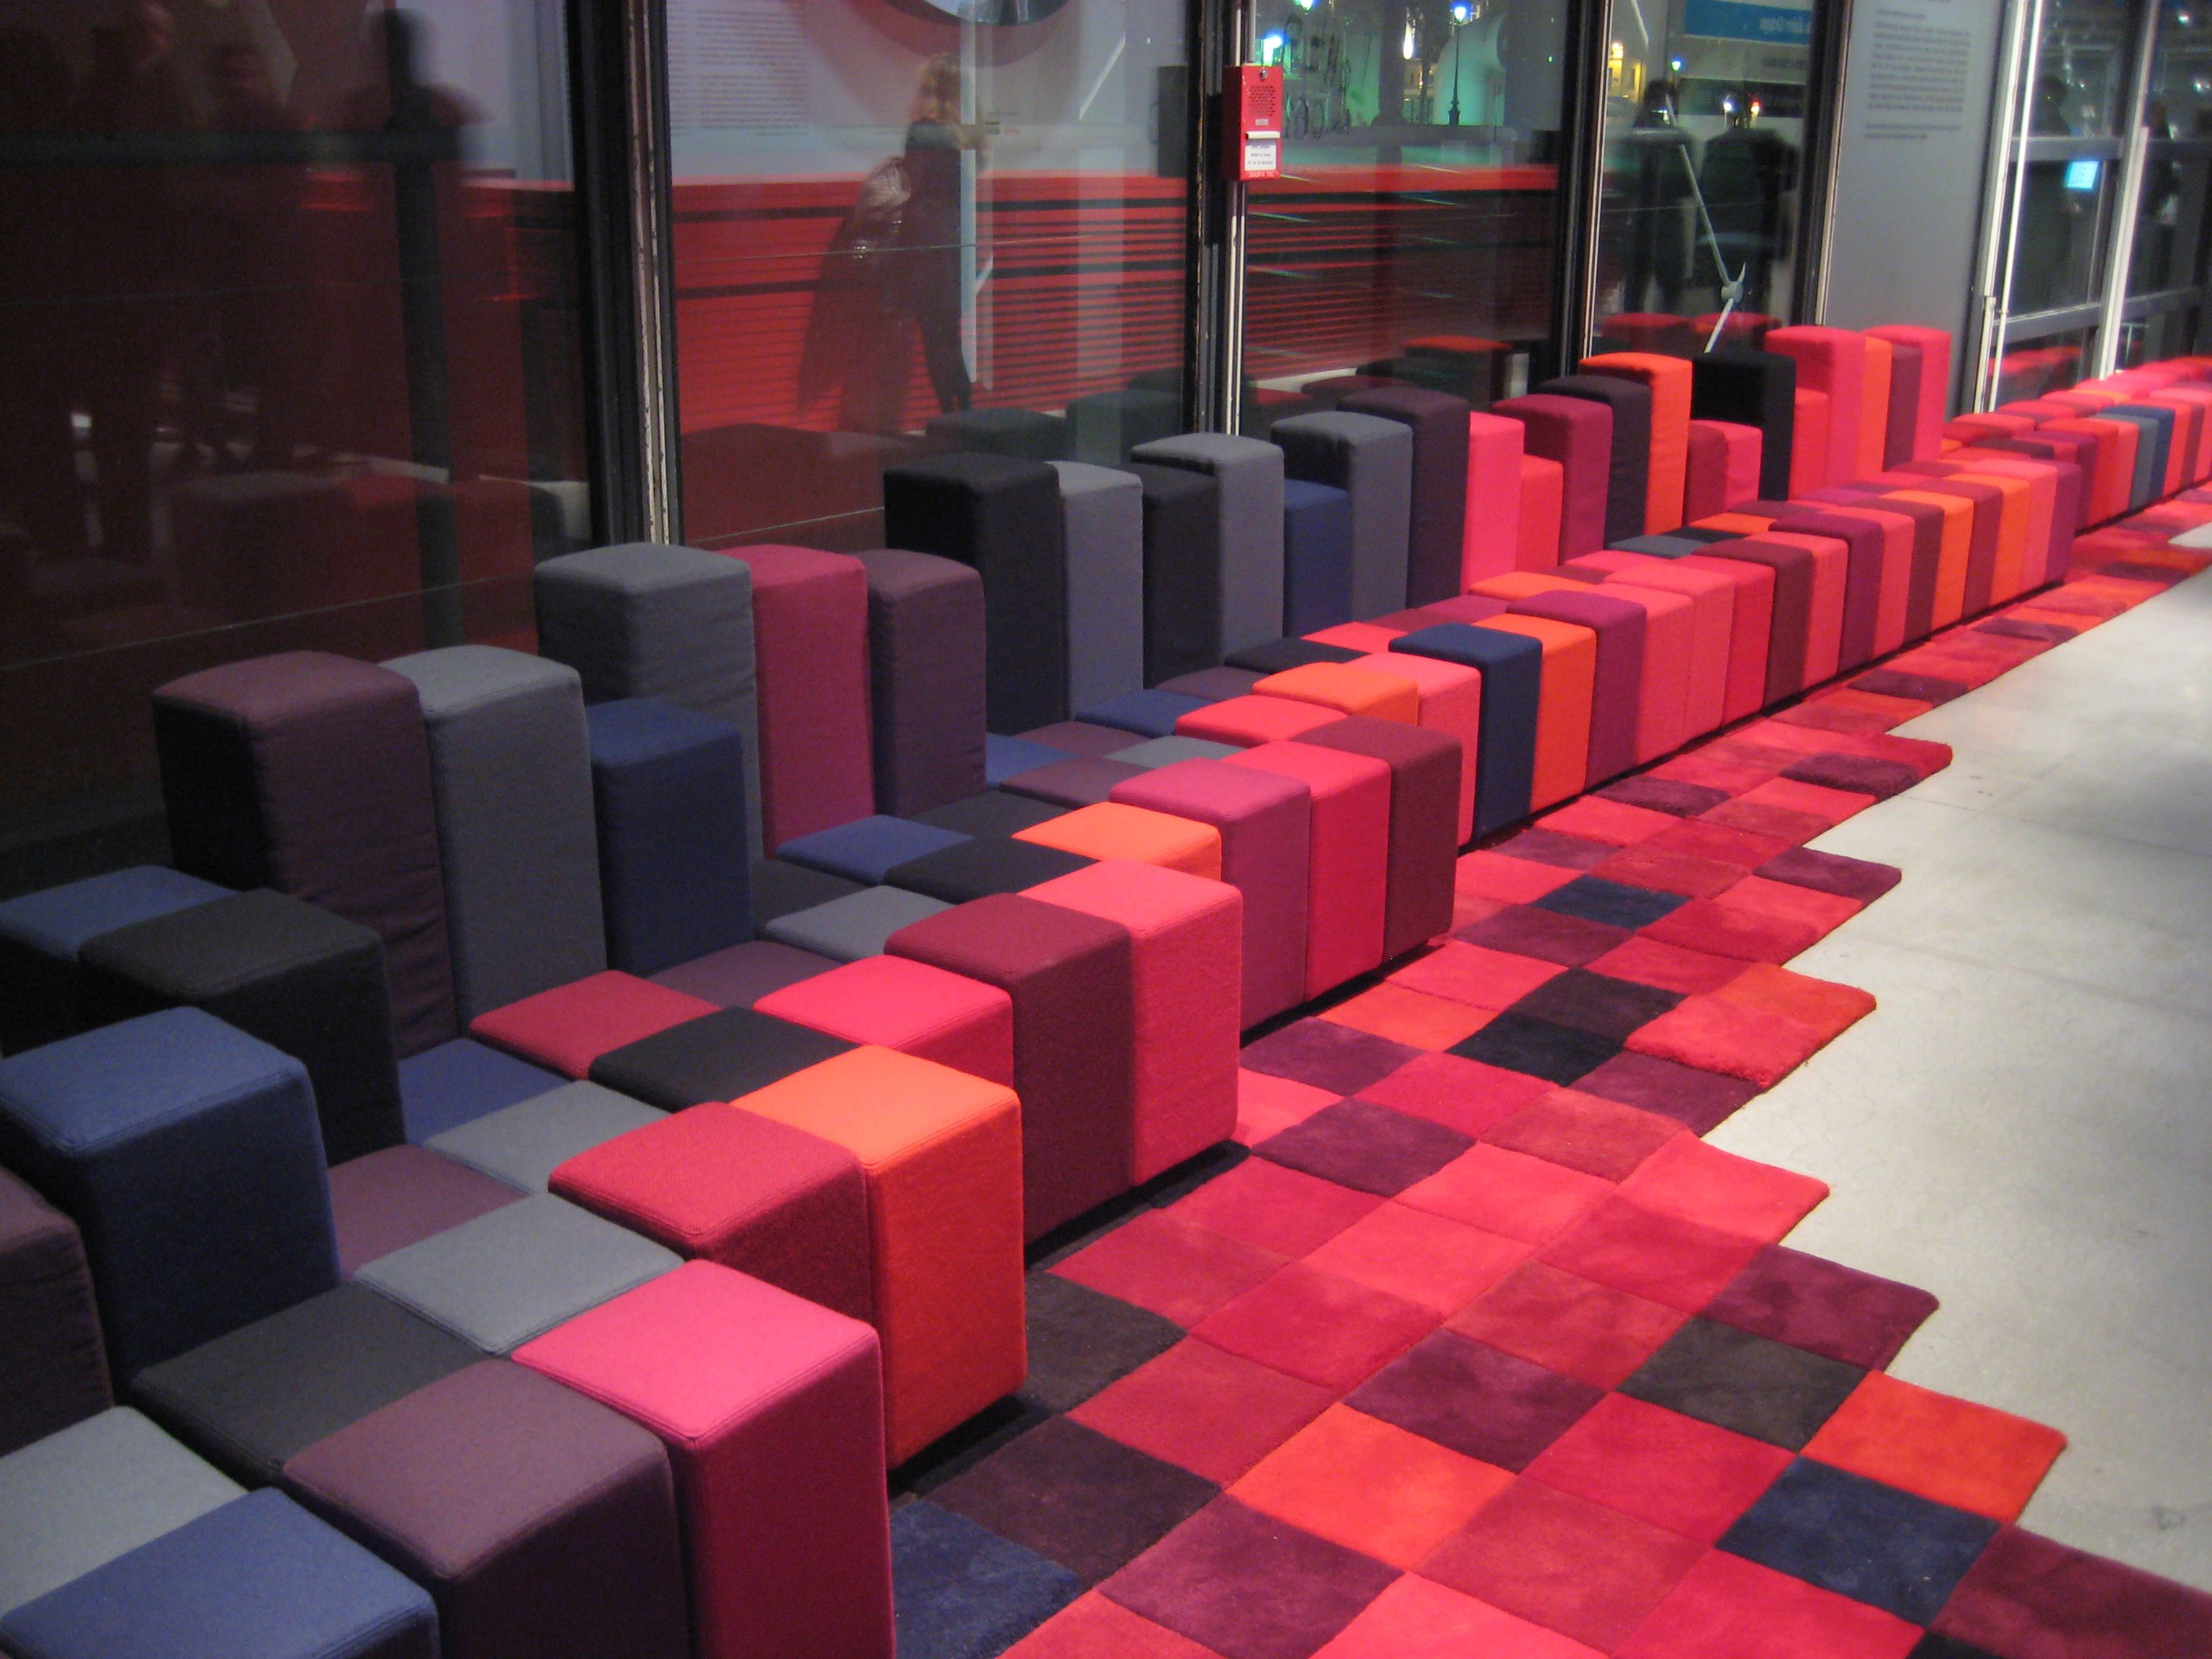 Attractive Do Lo Rez Rug Designed By Ron Arad For Nanimarquina. George Pompidou Center Nice Design